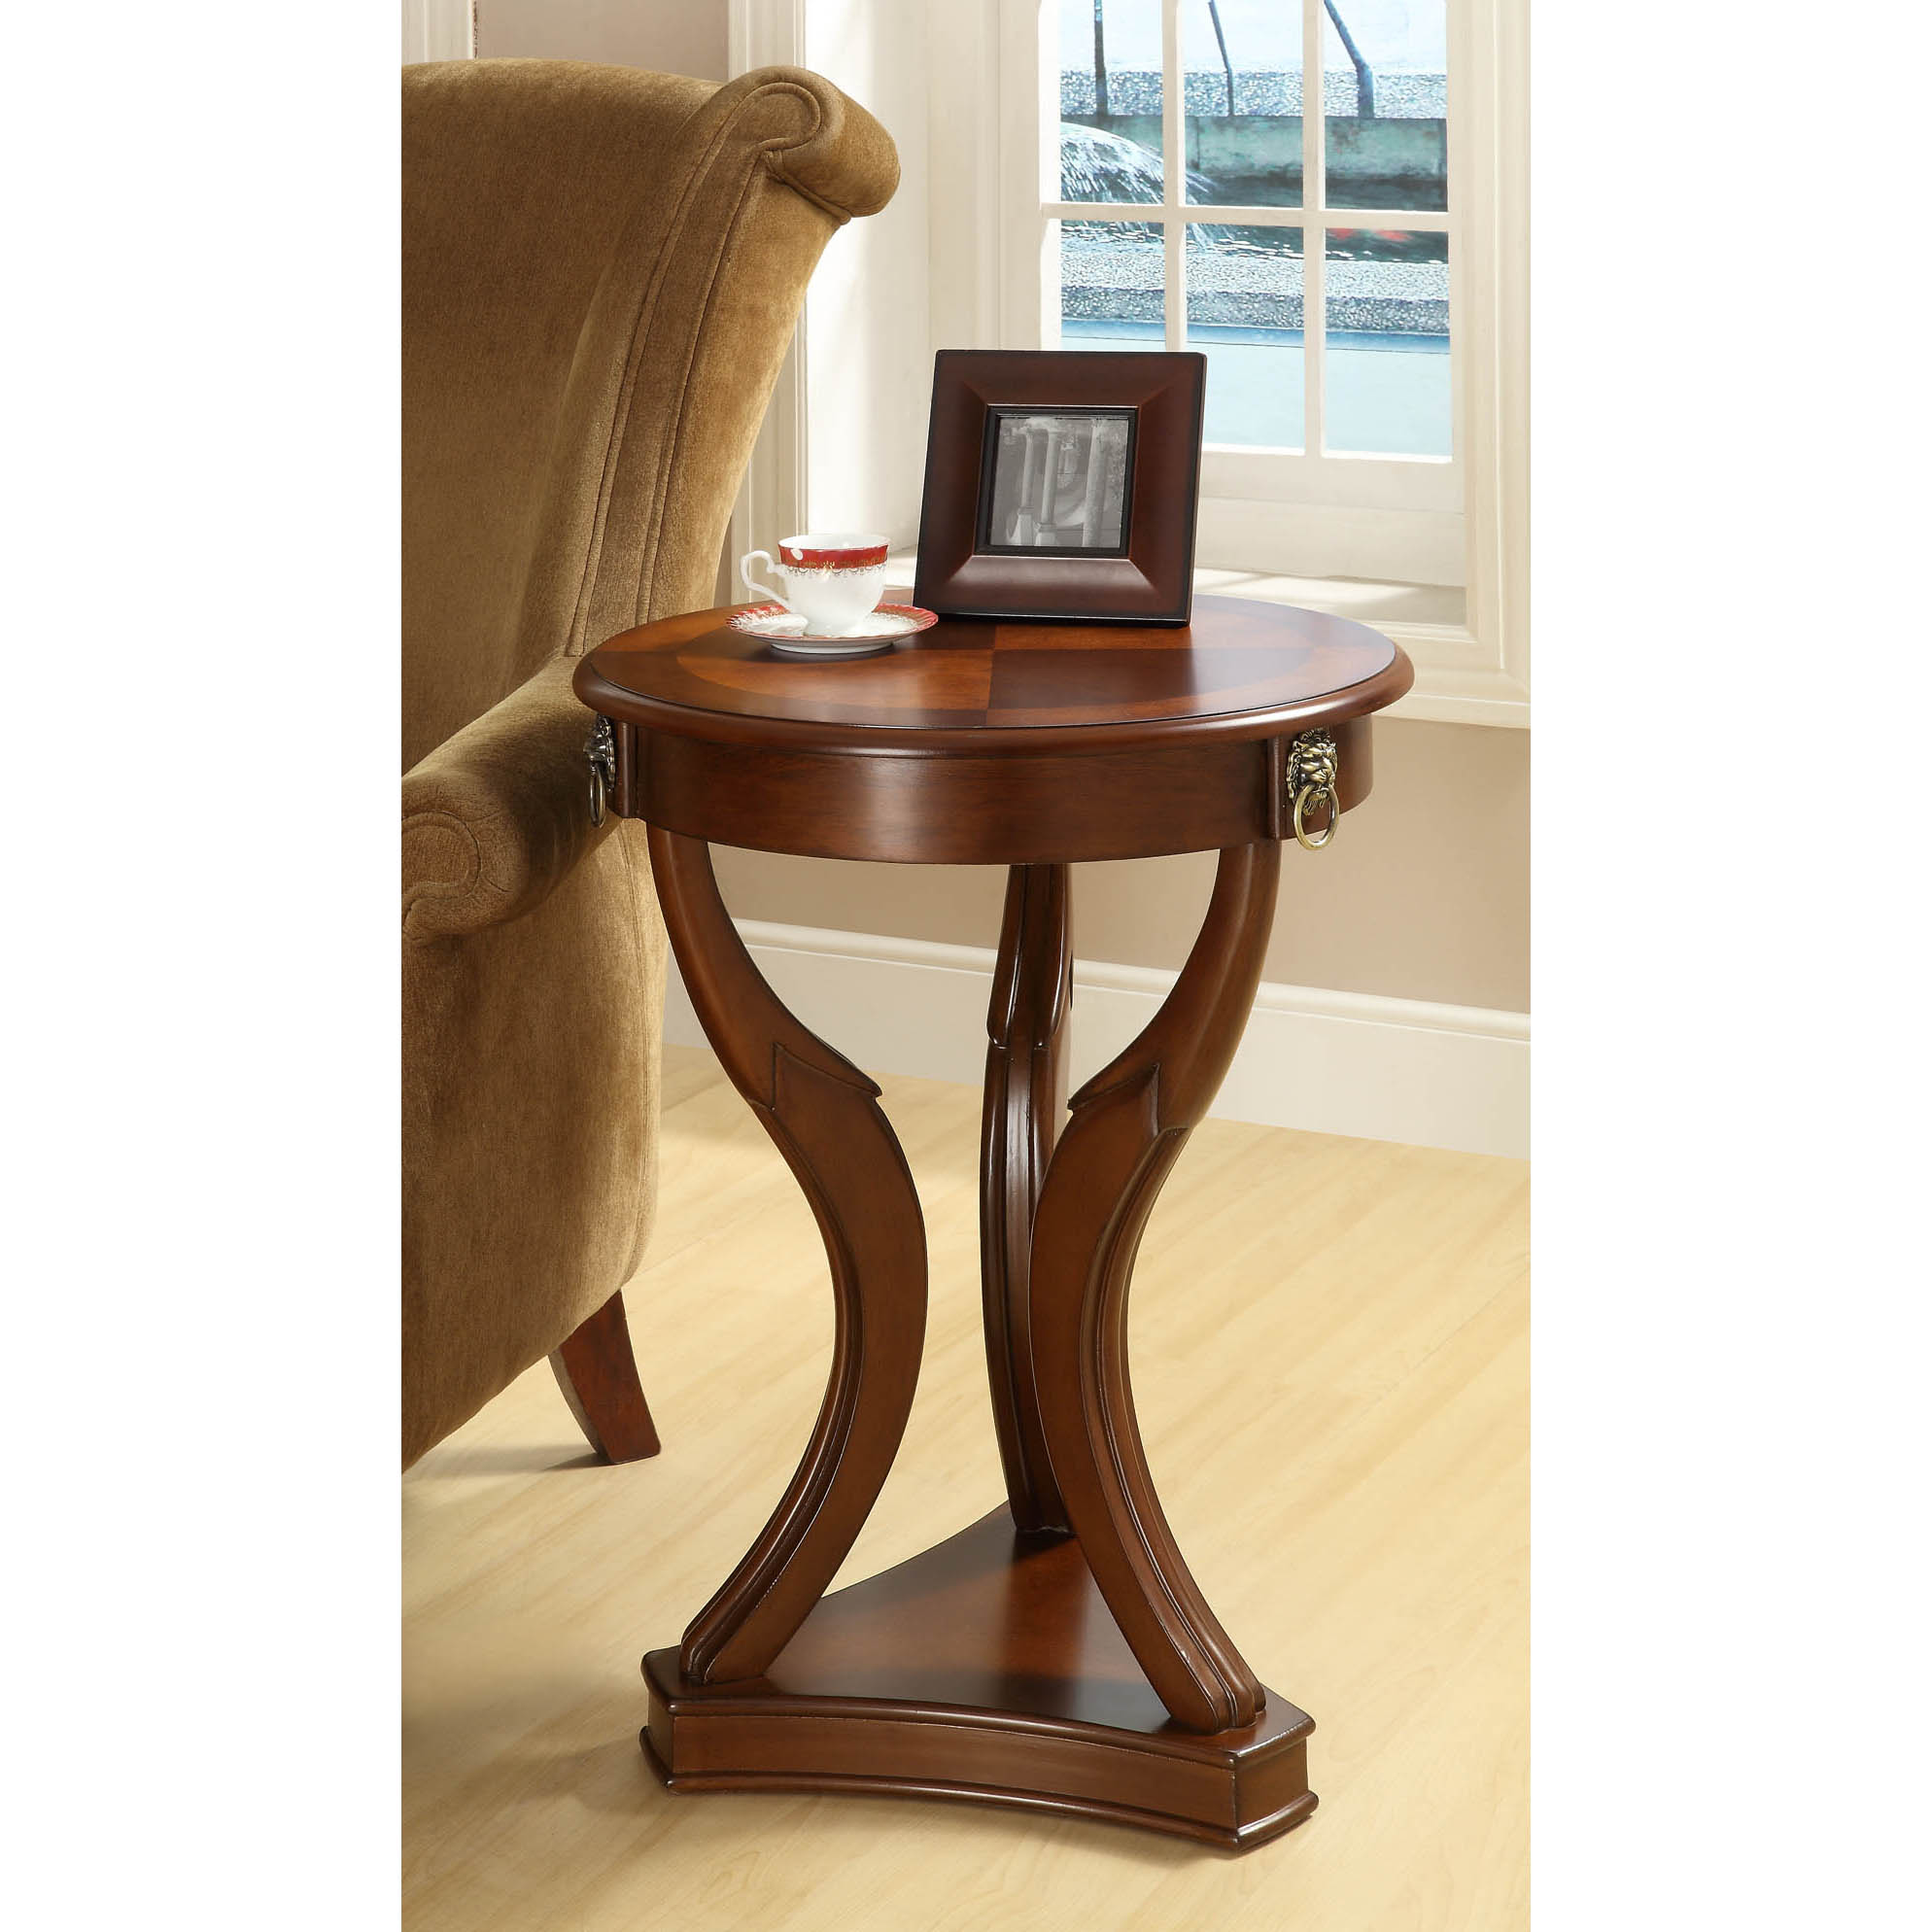 Medium Brown Birch Veneer 20-inch Accent Table